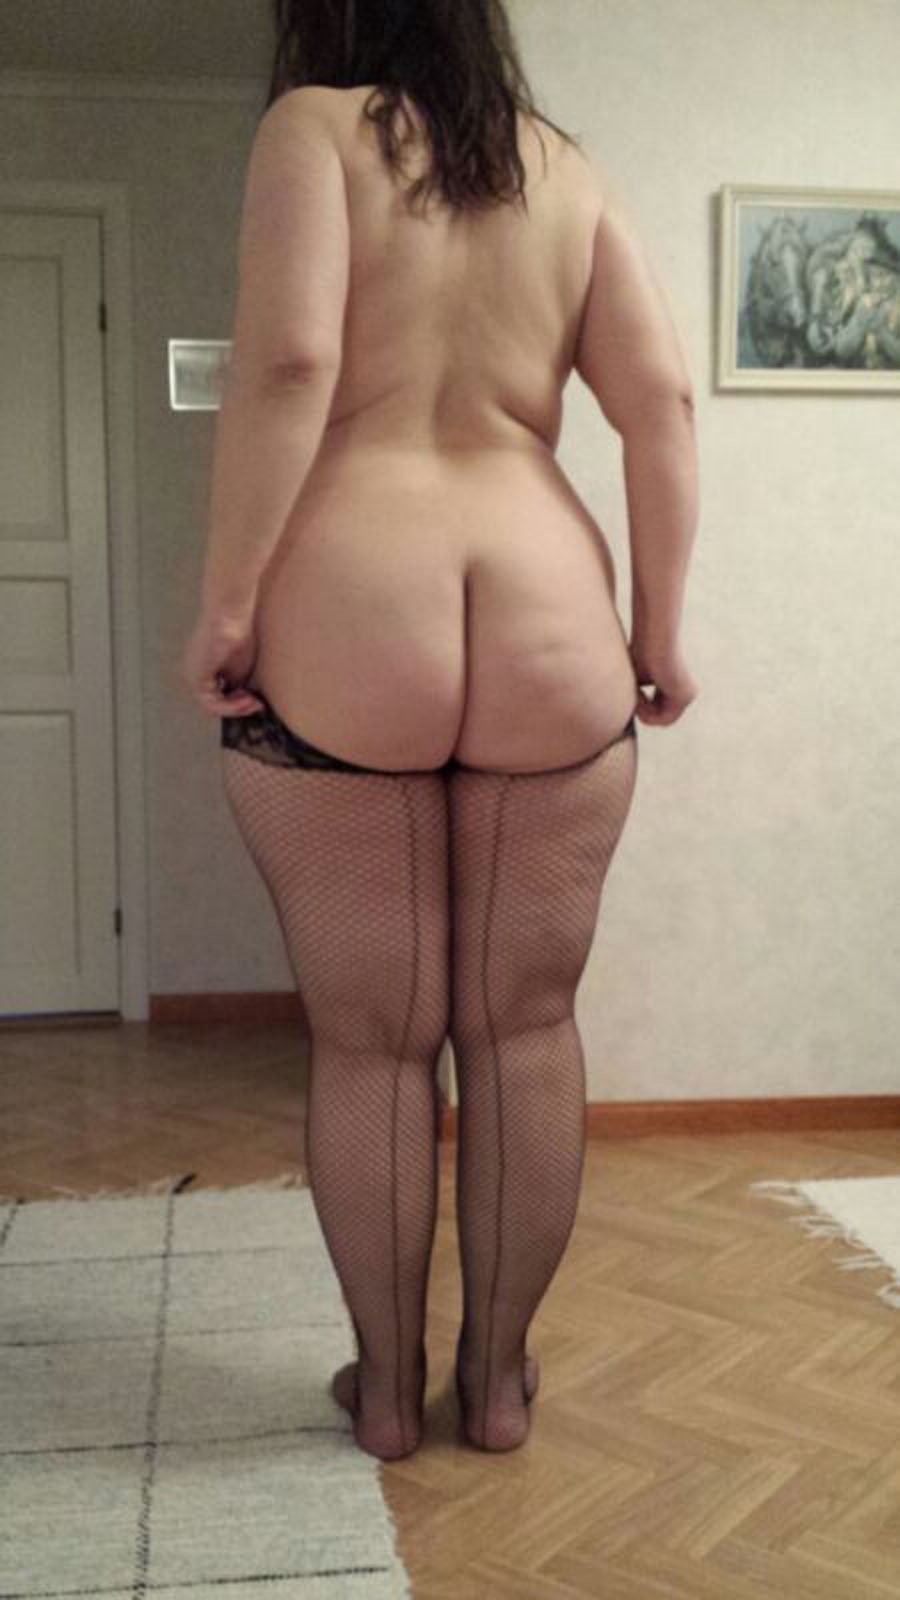 Fat Girl Big Ass Porn